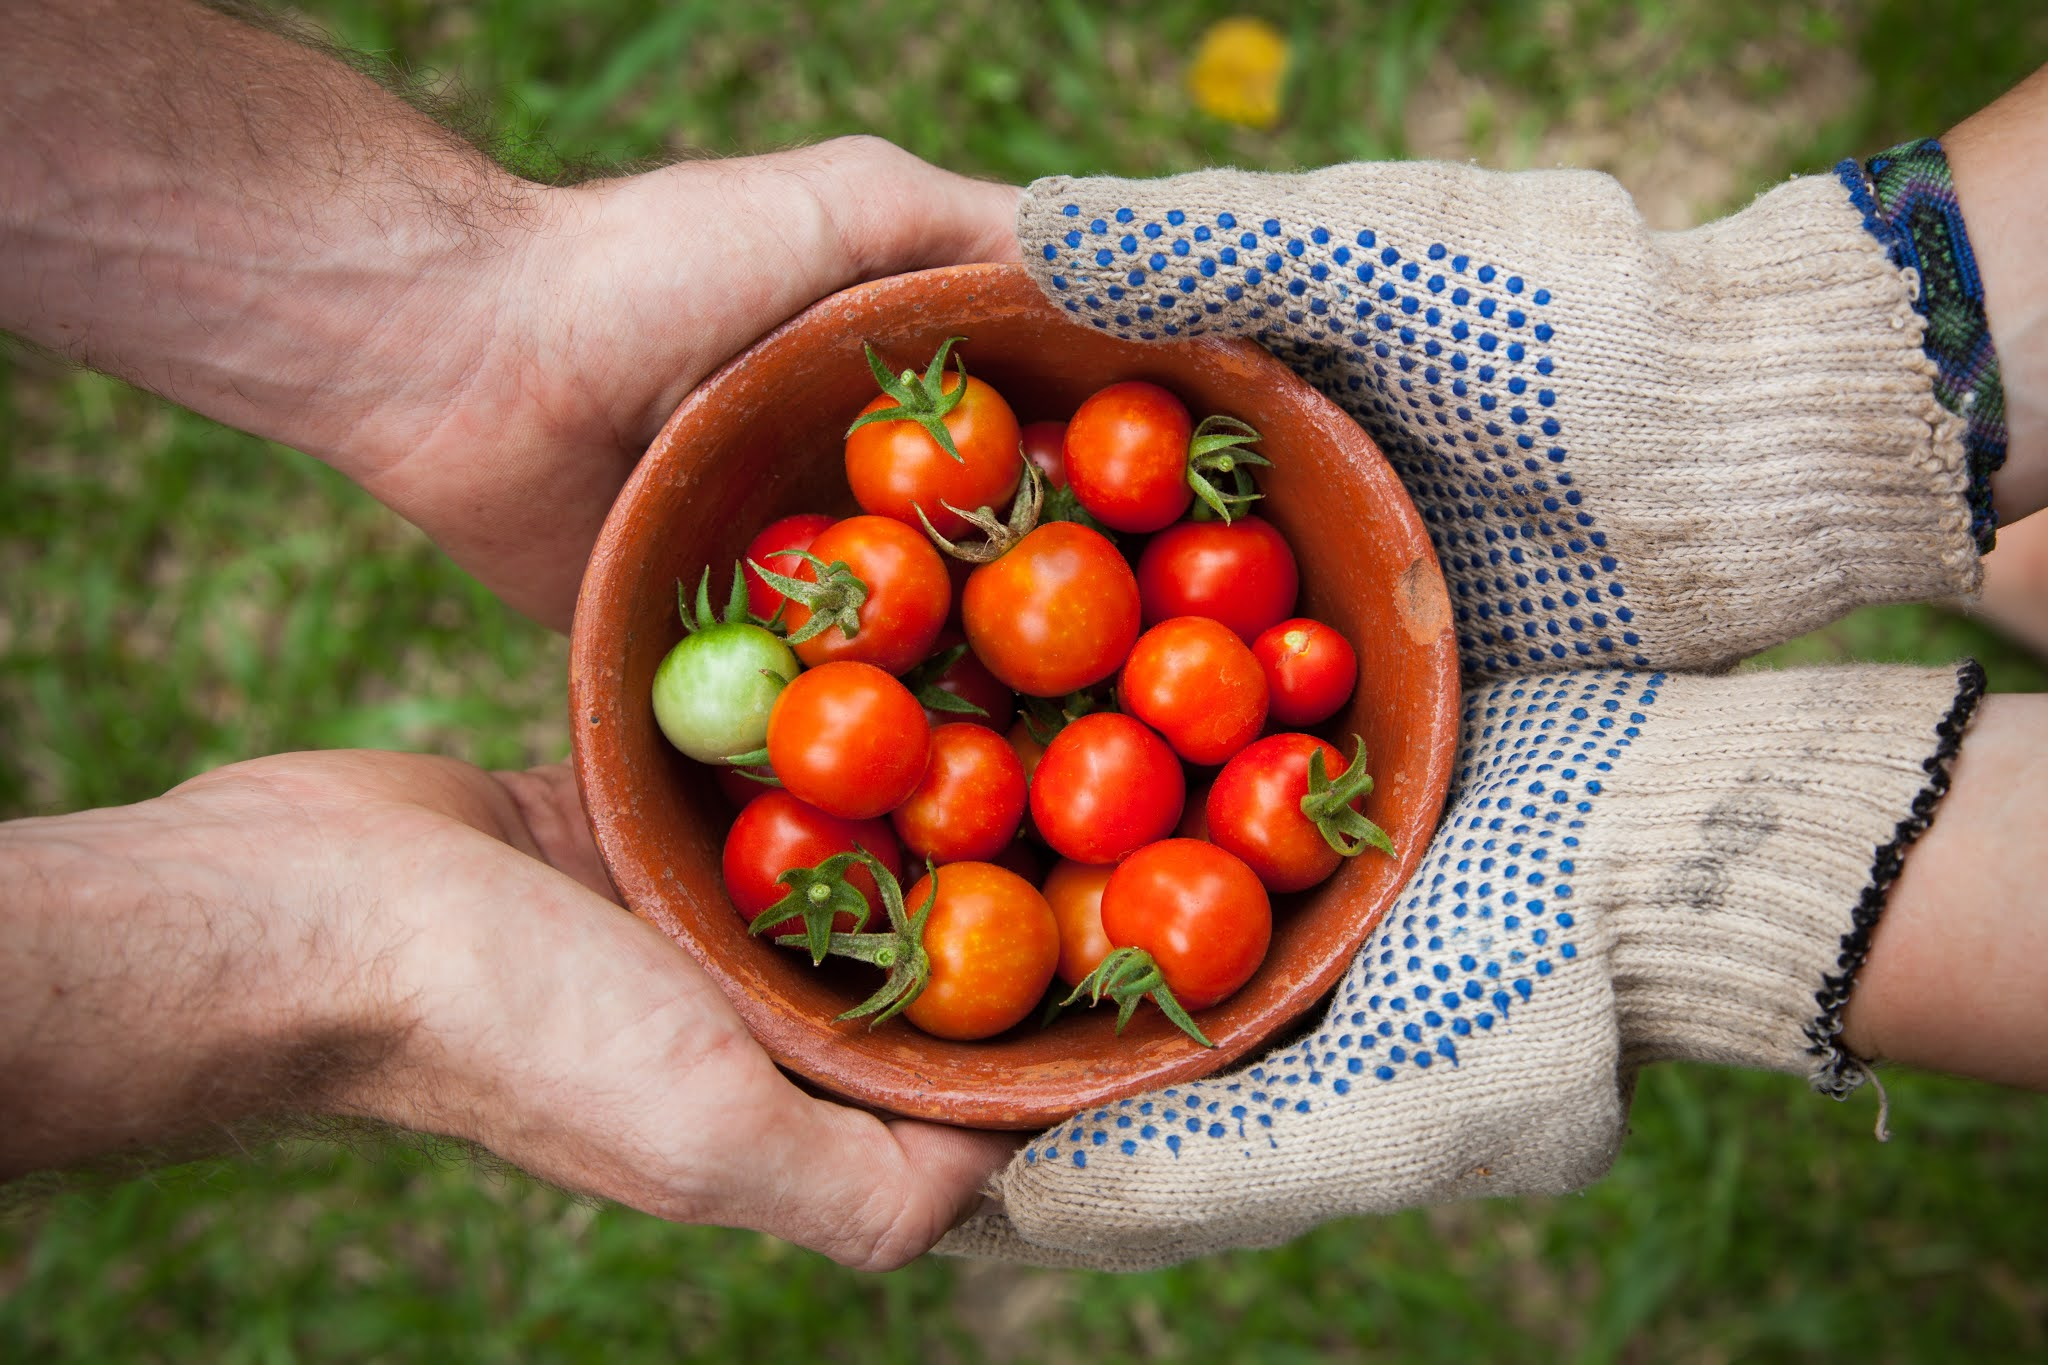 Harvesting and storing tomatoes